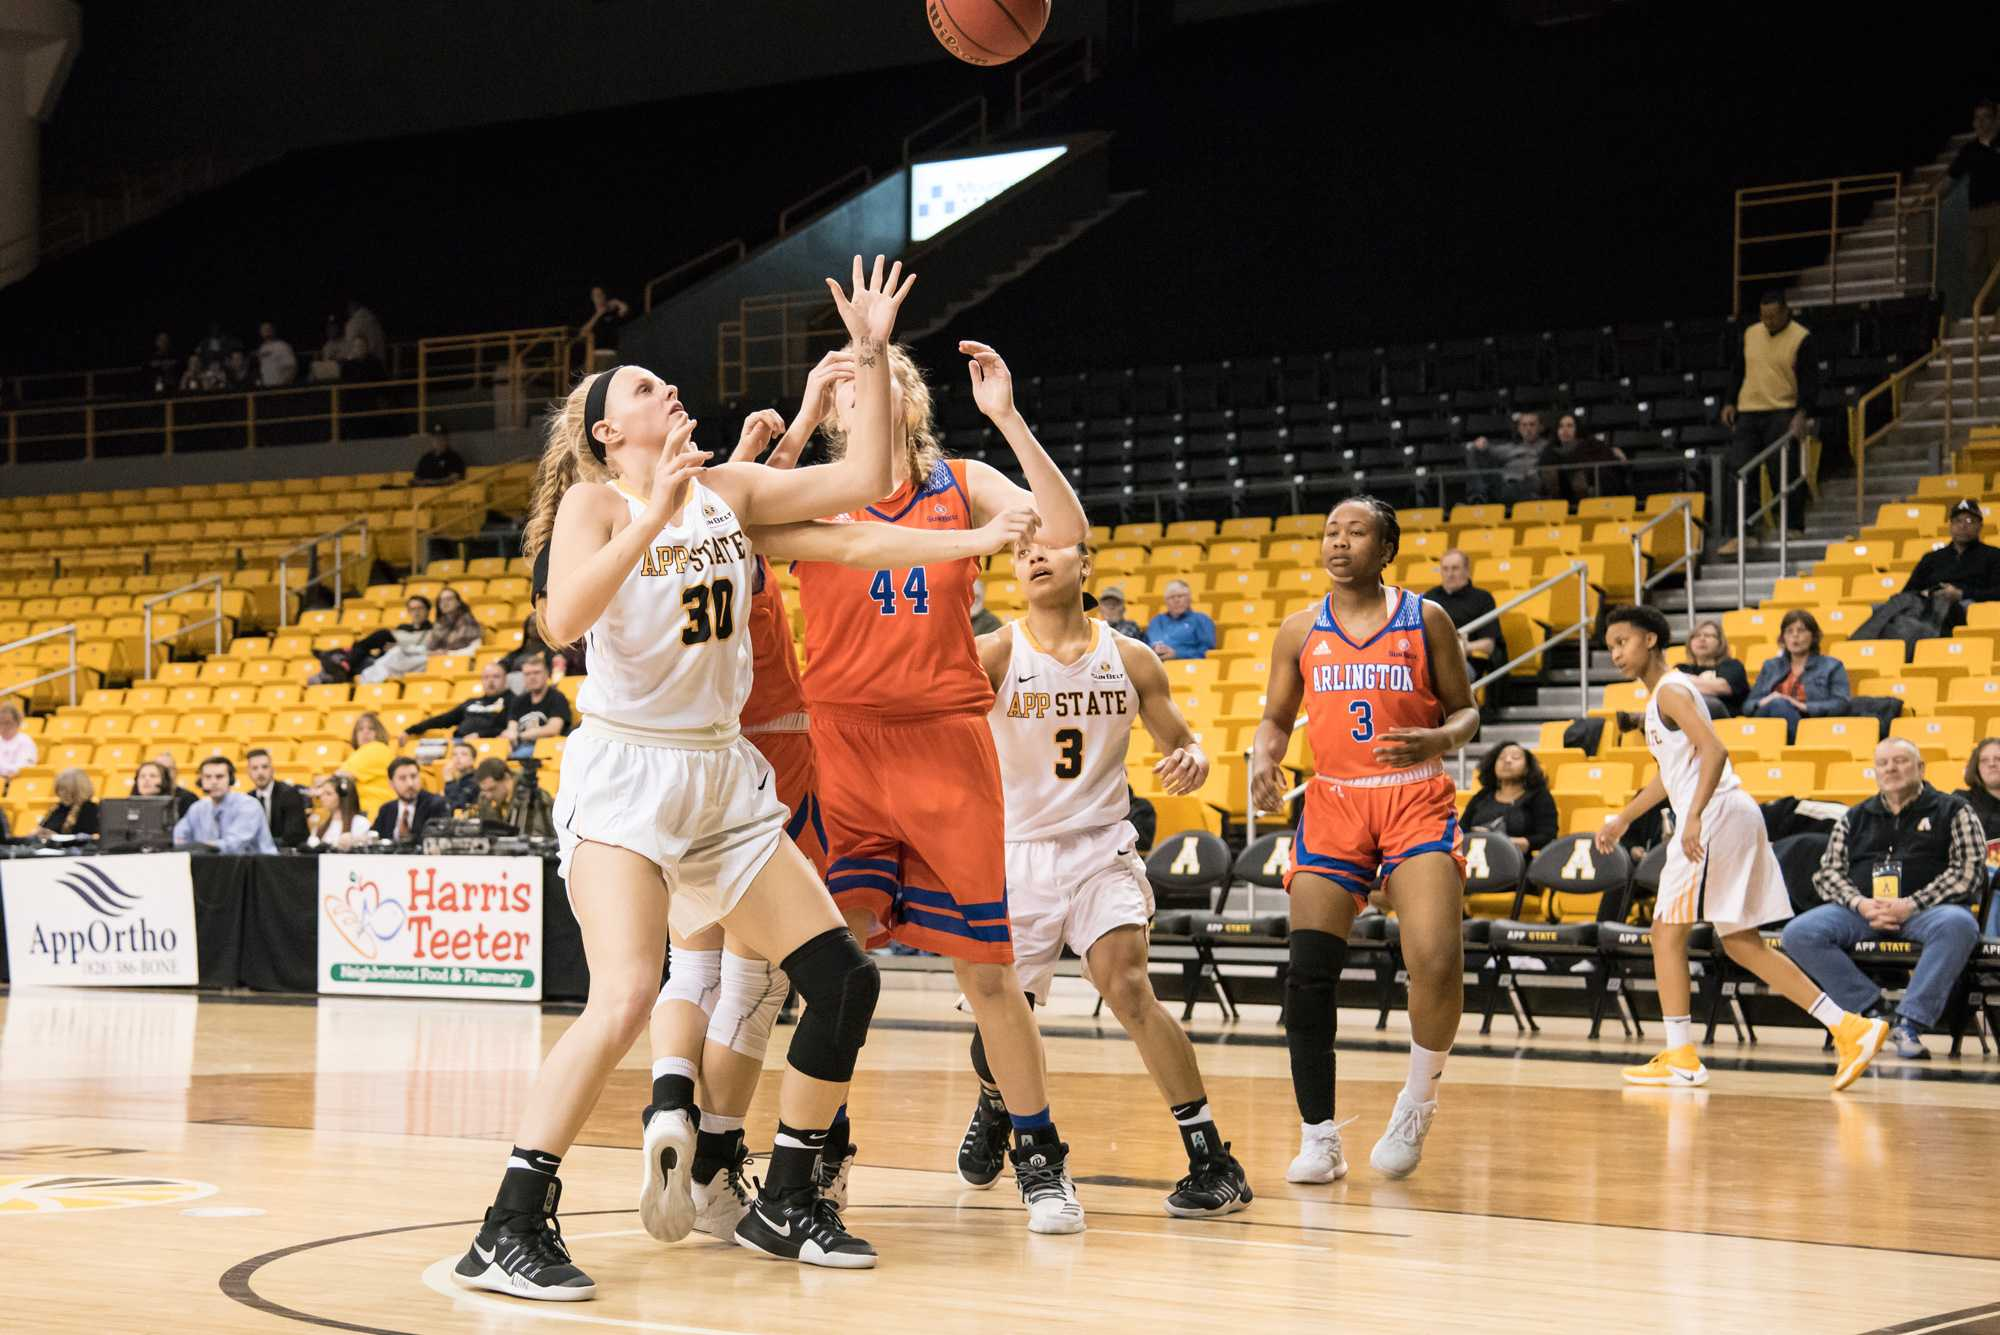 Bassett-Smith ready to leave her mark on App State basketball